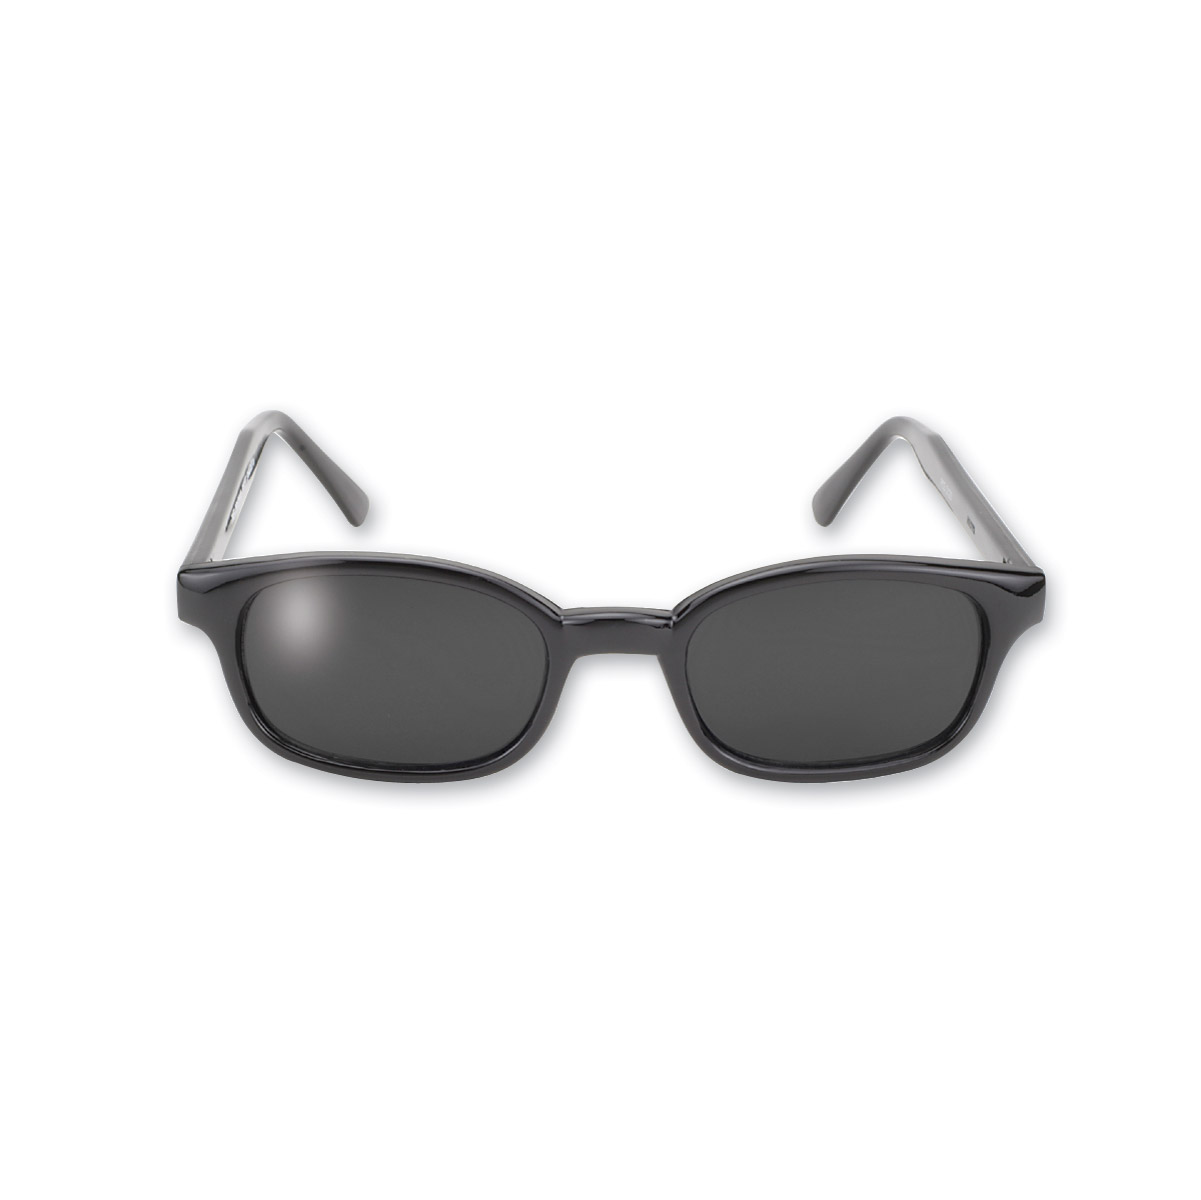 KD's Sunglasses - Black Frame with Dark Grey Lens